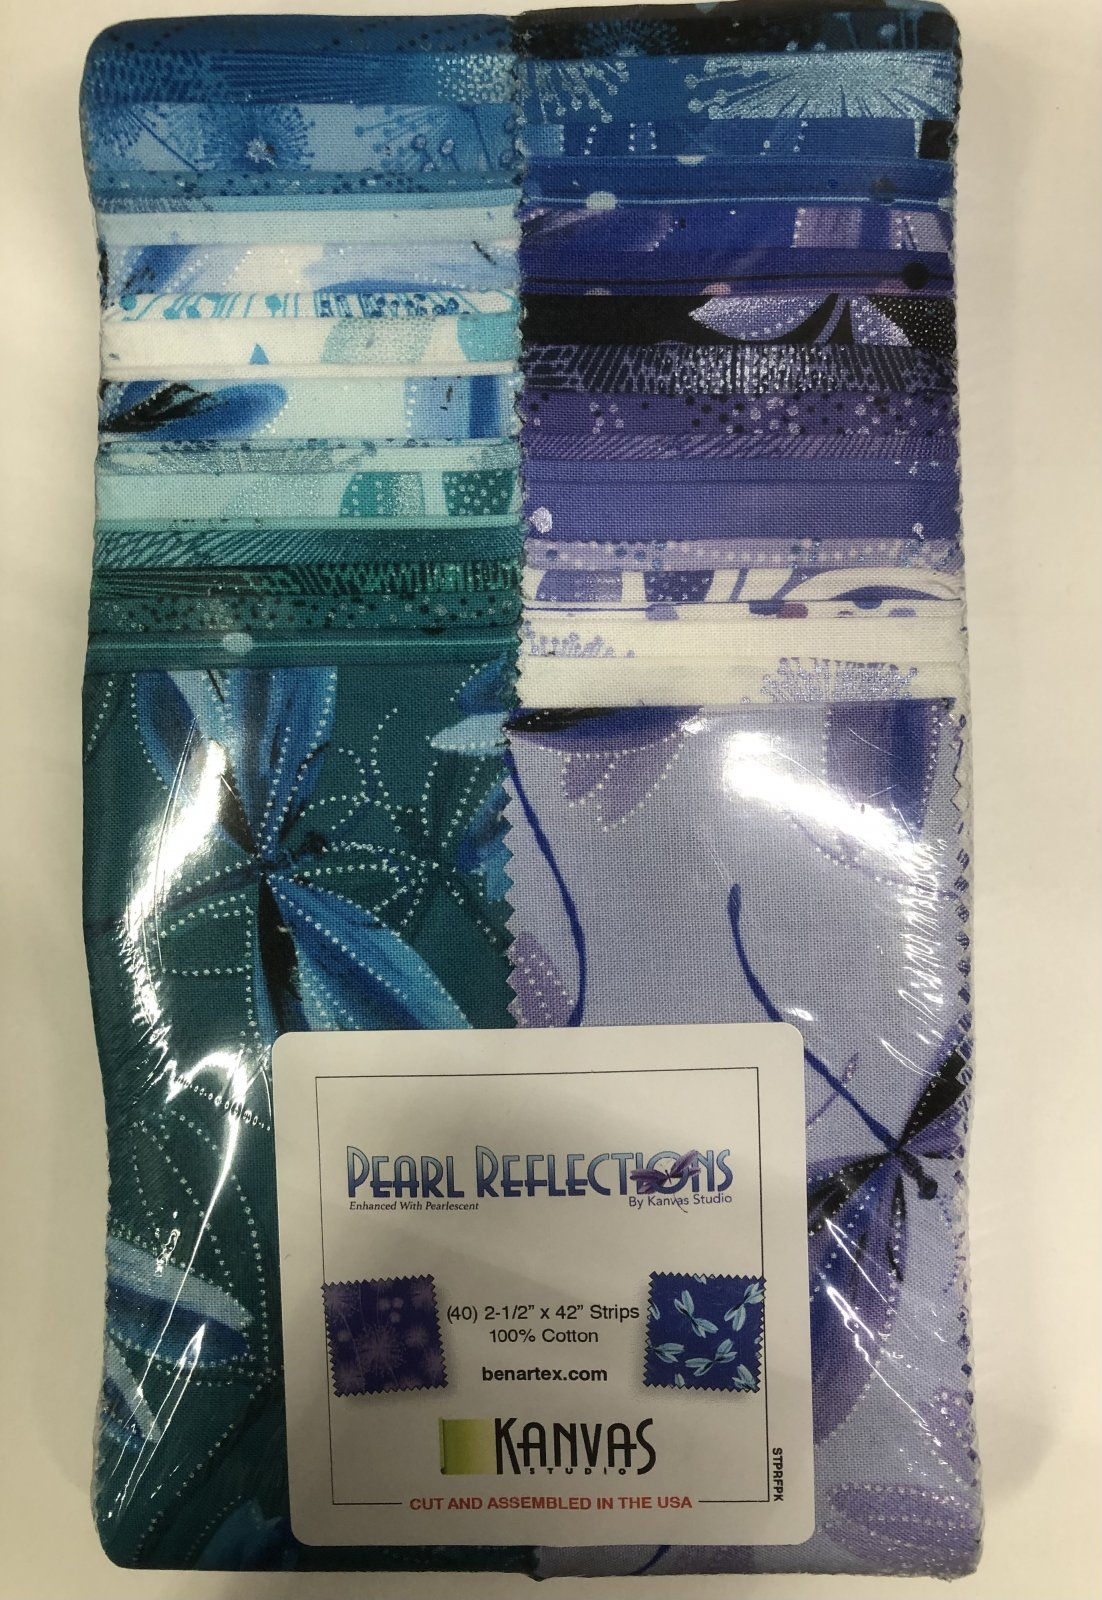 2.5 inch STRIPS:  Pearl Reflections by Benartex - 40 piece 2.5 inch Fabric Strips Flat Pack